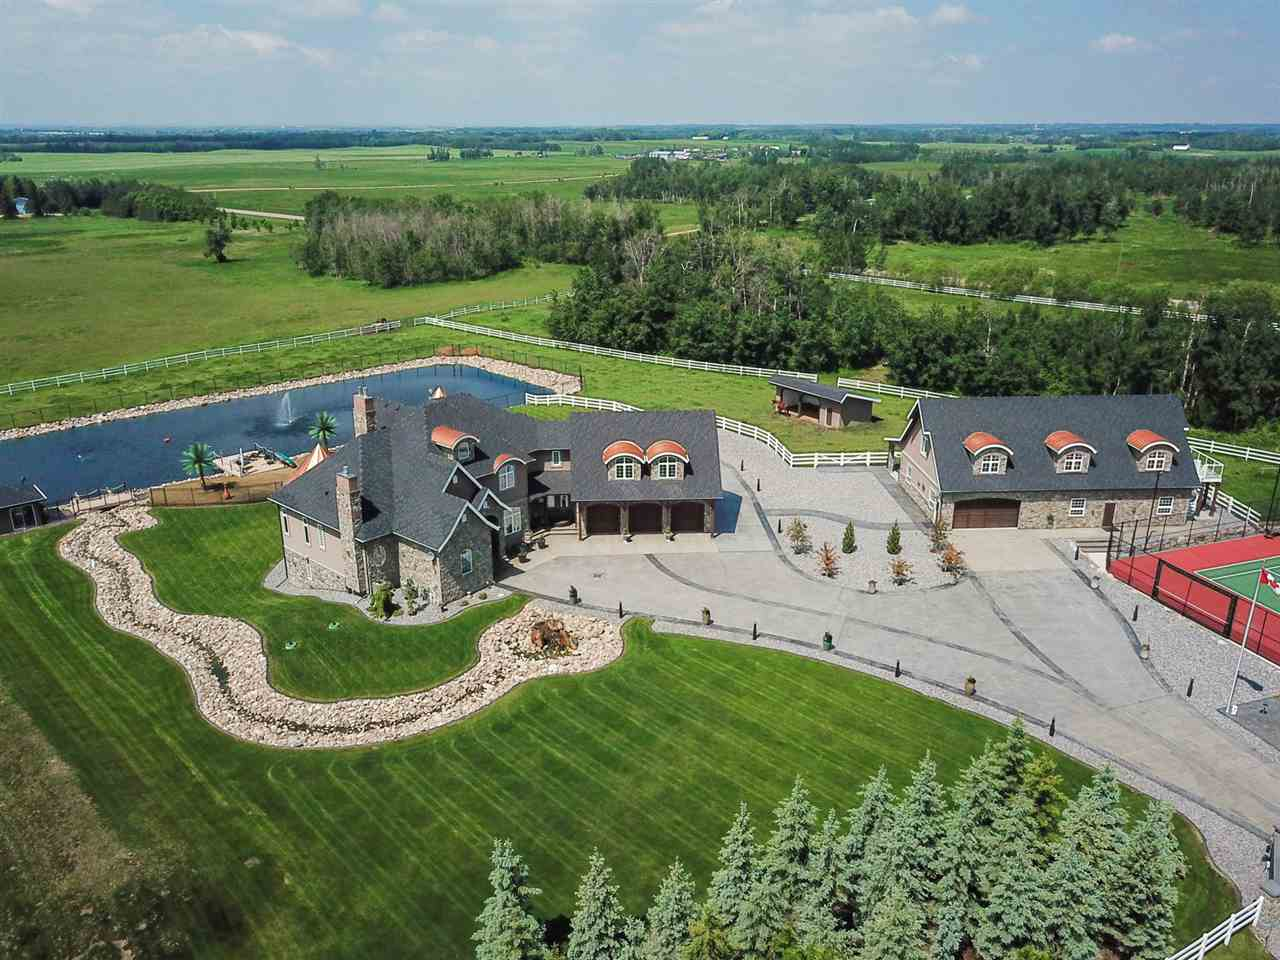 ONE OF A KIND GATED & MANICURED property MINUTES from Edmonton & Beaumont, on 4.47 acres, with an aerated SWIMMING POND, LIGHTED TENNIS COURT & SET UP FOR HORSES! Custom H & S JONES build offering over 7500 sq. ft. of GRACIOUS LIVING space in this 2 storey with a MAGNIFICENT MAIN FLOOR MASTER SUITE & a fully developed WALKOUT. COPPER DORMERS & NATURAL STONE from BC is featured on the exterior & interior of the home, SHOP & BARN. If you can DREAM it is here from the DOCK & BOAT HOUSE on the SAND BEACH overlooking the SPARKLING POND fed by a WATER FEATURE and STREAM thru the yard, to the amazing 5 STALL BARN attached to the OVERSIZED SHOP featuring a 1333 sq. ft. 2 bedroom STUDIO with balcony above! THEATRE, EXERCISE ROOM with CORK flooring, 7 fireplaces, SAFE ROOM, INDOOR PARKING for 8 VEHICLES with EPOXY FLOORS, WALNUT & WROUGHT IRON STAIRCASE, CUSTOM GLASS DOORS, ONE OF A KIND SINKS, TRAY & SOARING CUSTOM CEILINGS, BUTLERS PANTRY, EXOTIC GRANITES, TIMBERFRAME ACCENTS & PVC FENCING! IT IS SIMPLY AMAZING!